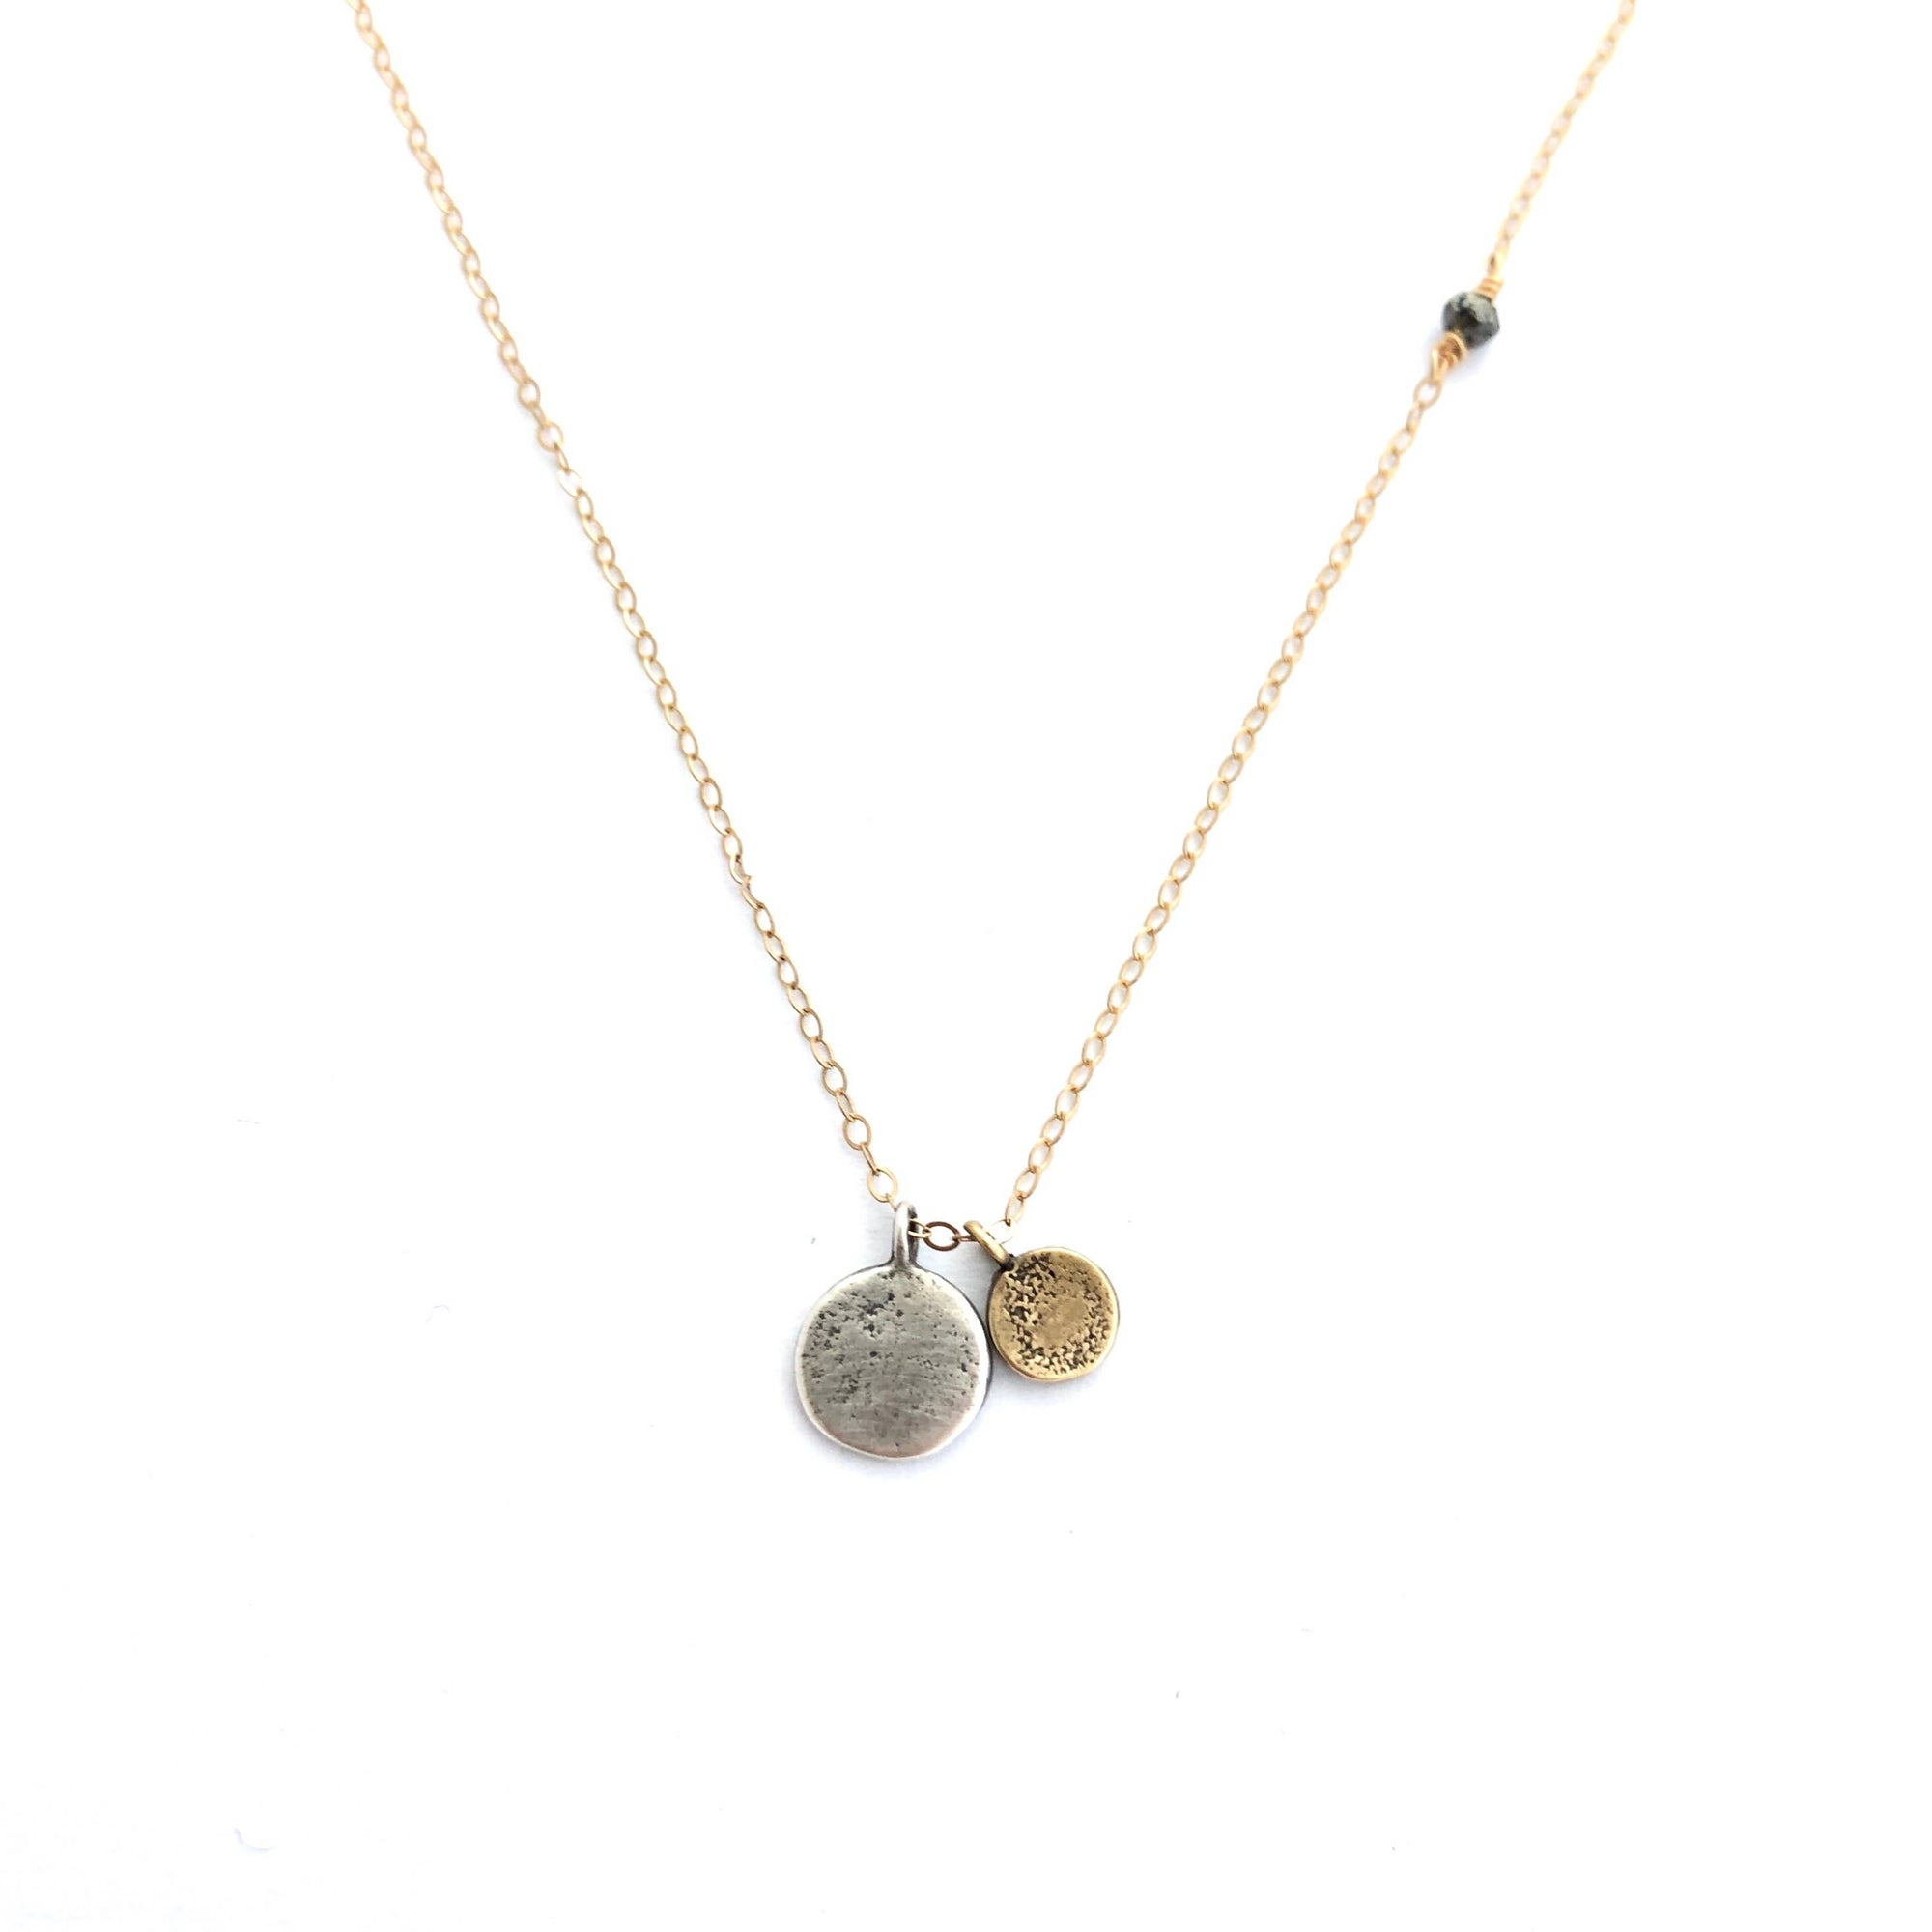 Gold and Silver Discs Necklace